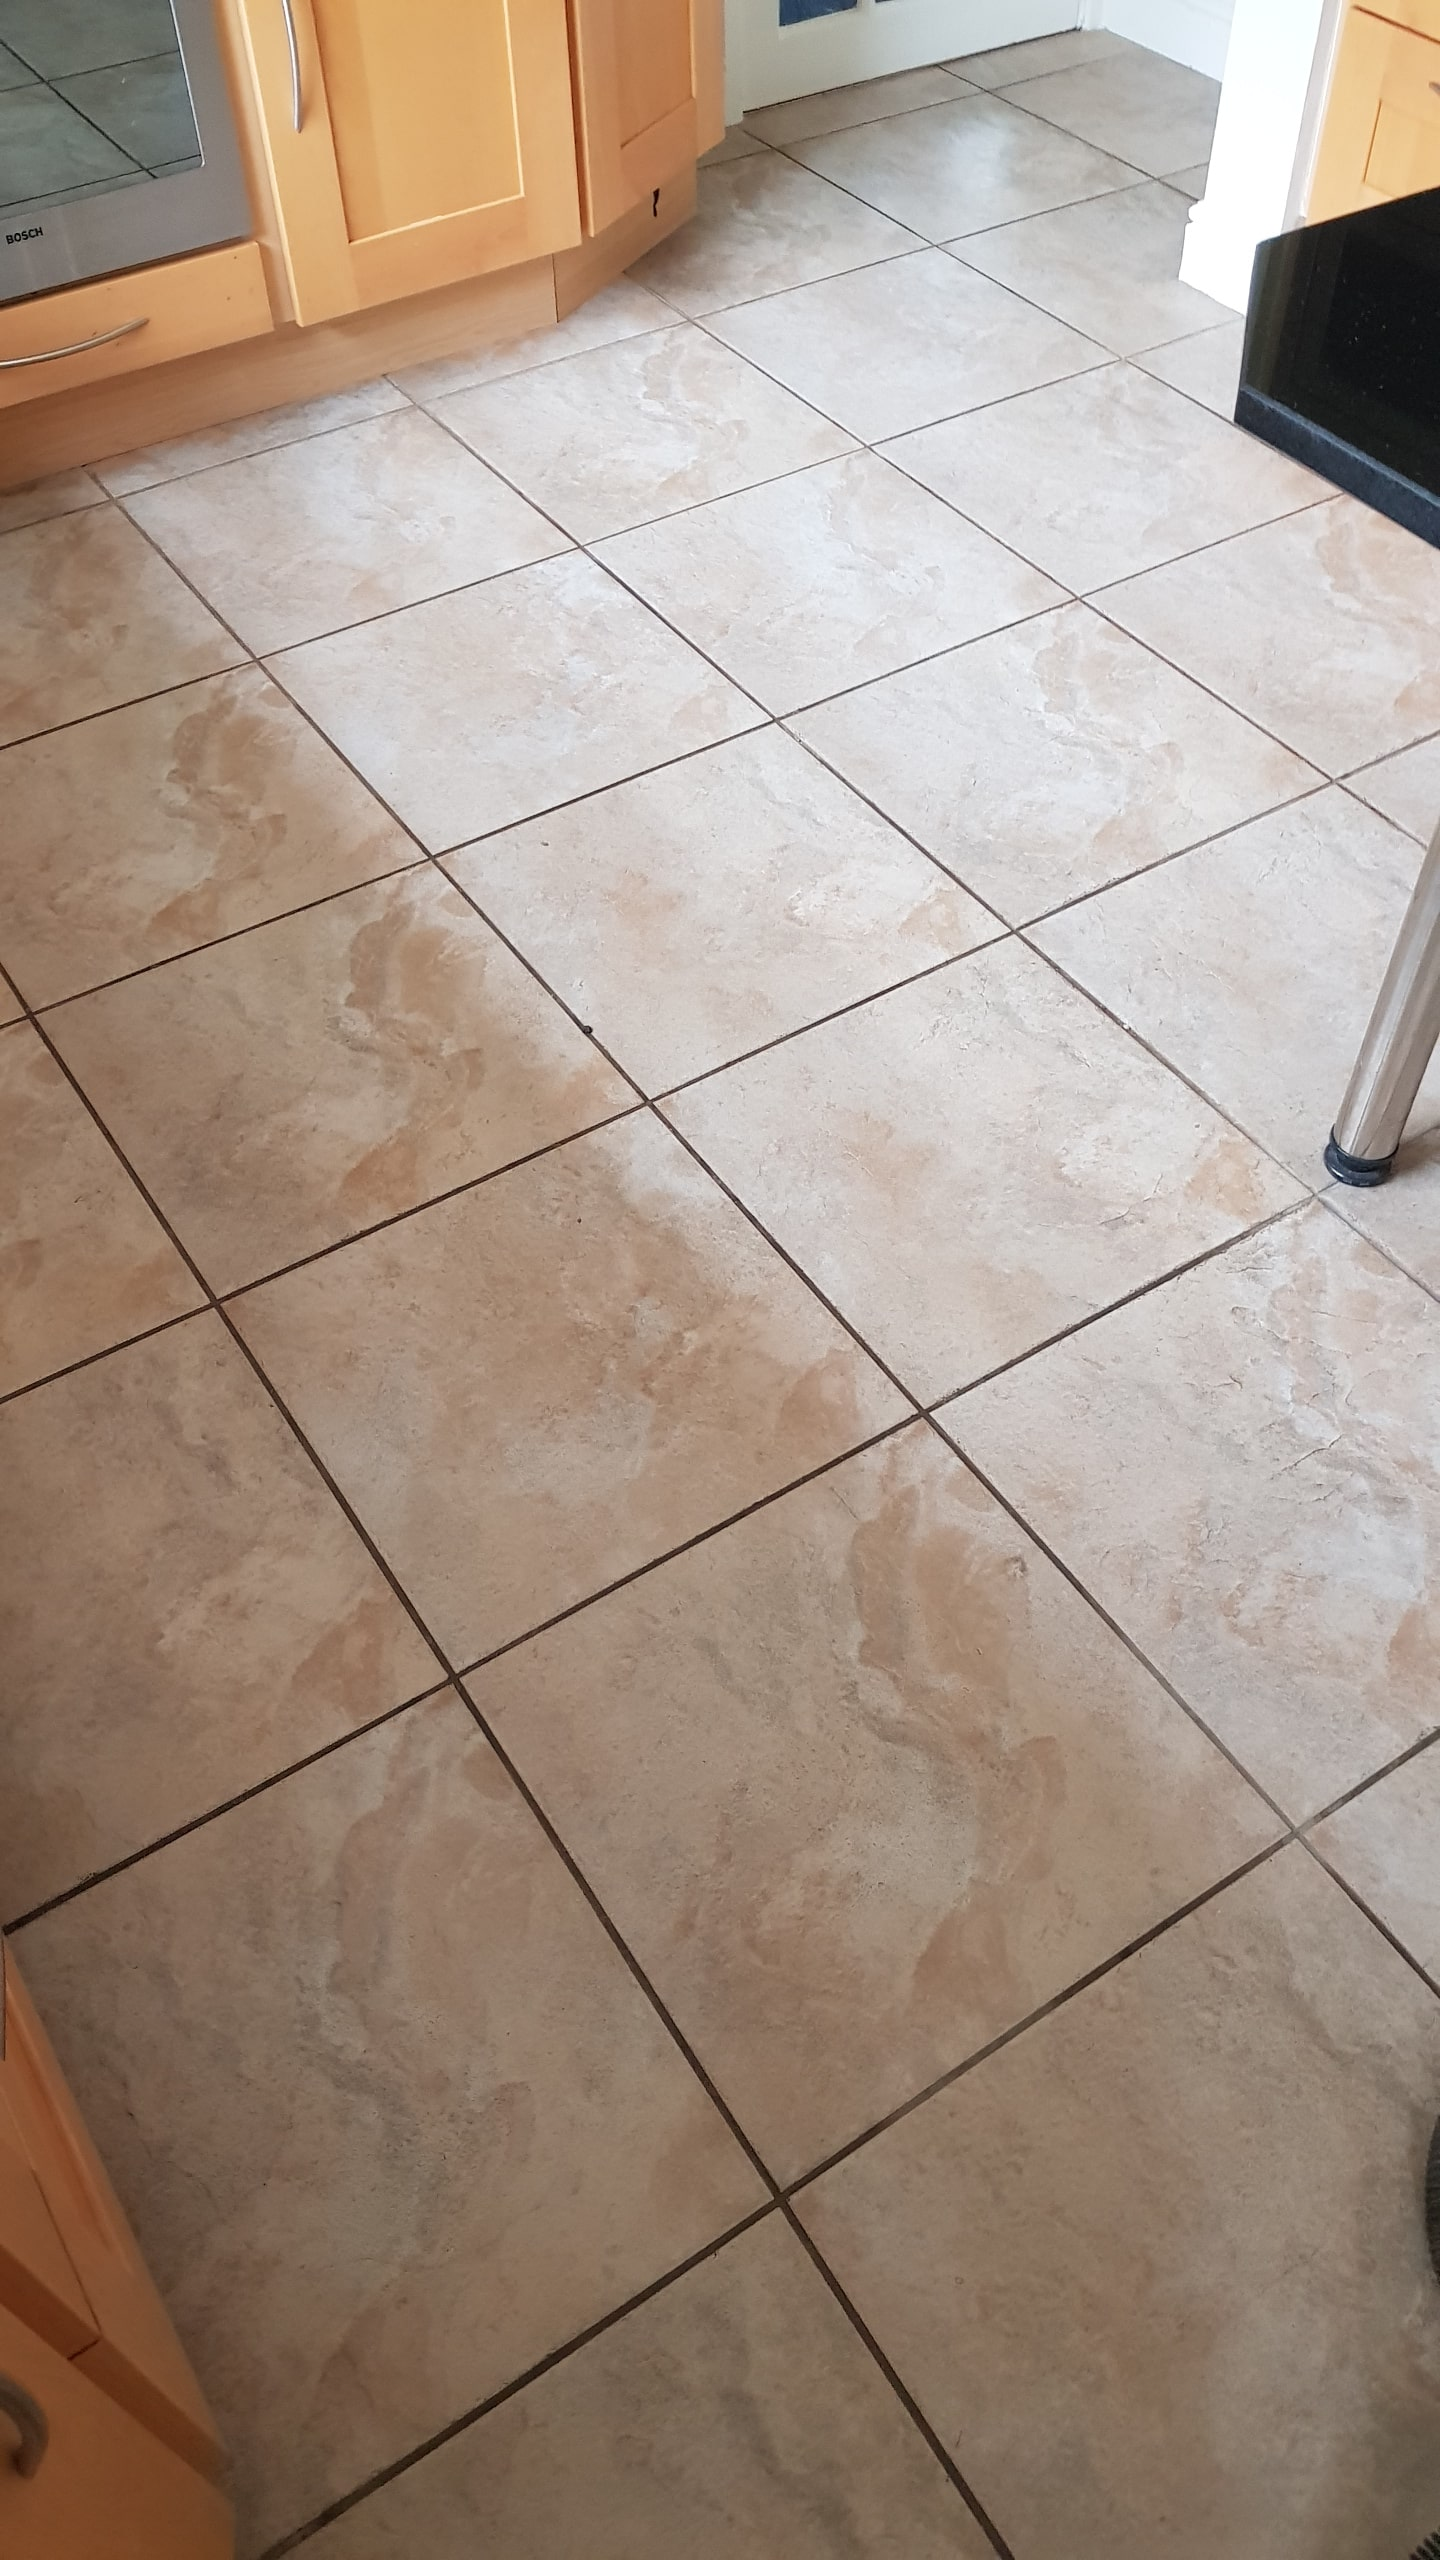 Ceramic Tiled Floor Before Grout ReColour Wickersley Rotherham